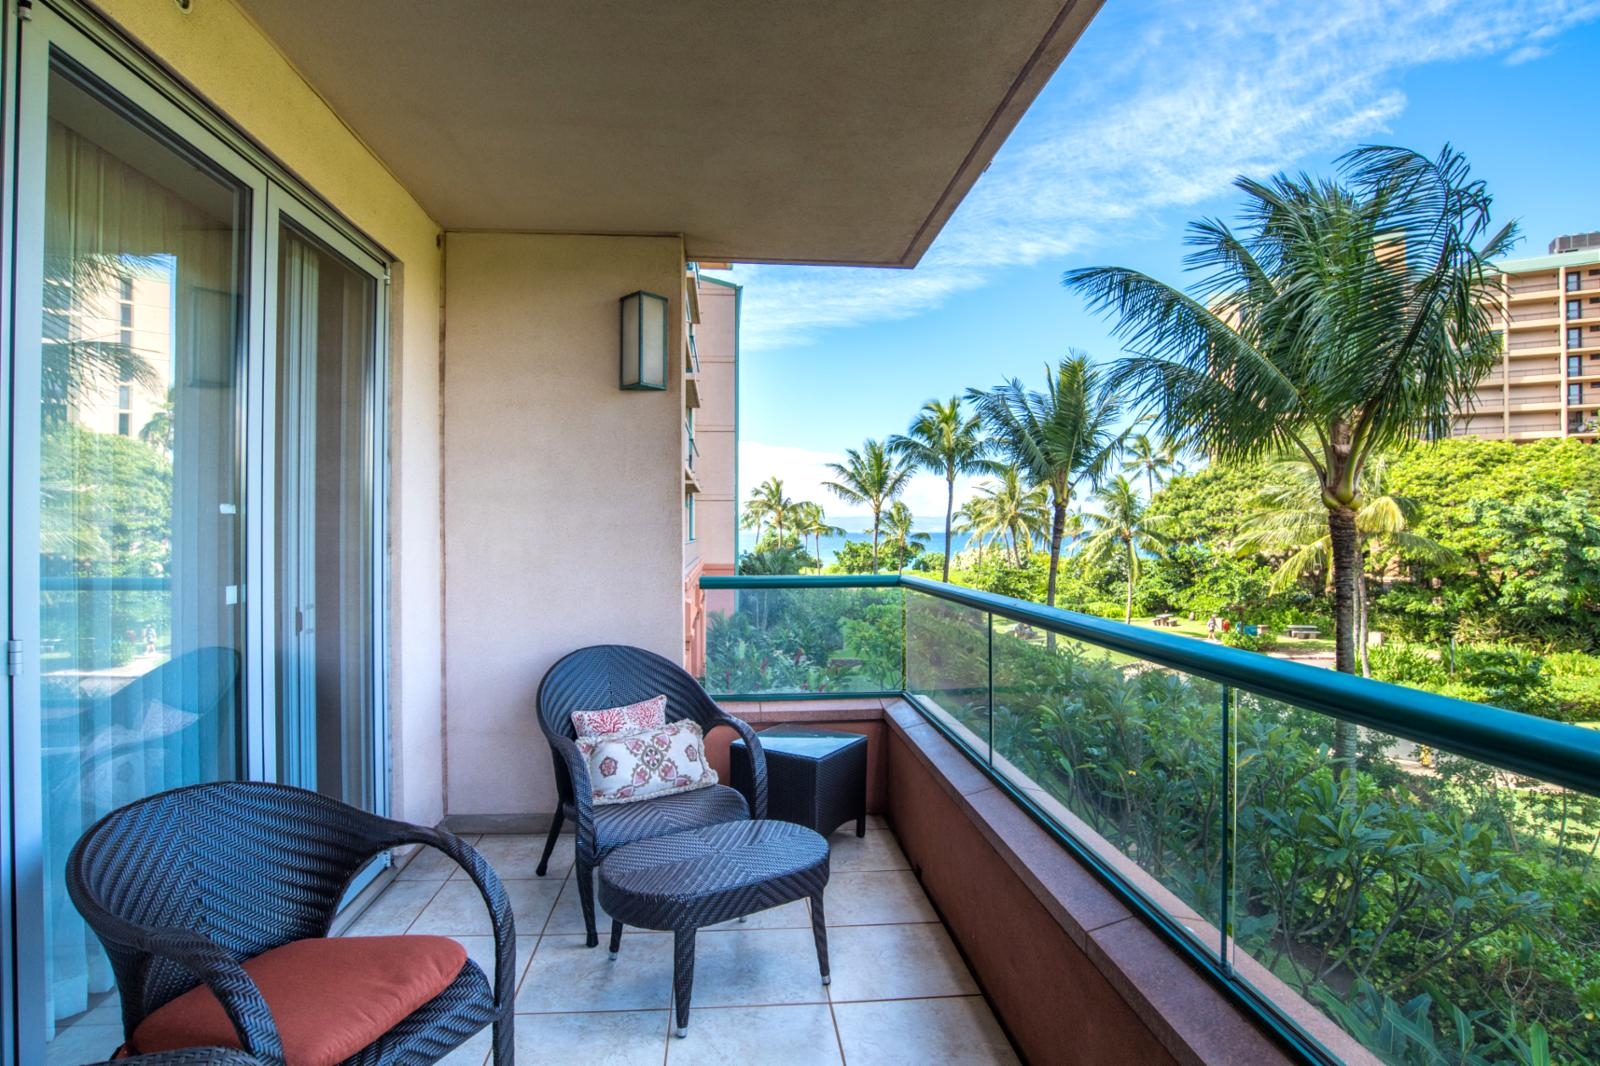 Ample space and upgrade lanai furniture